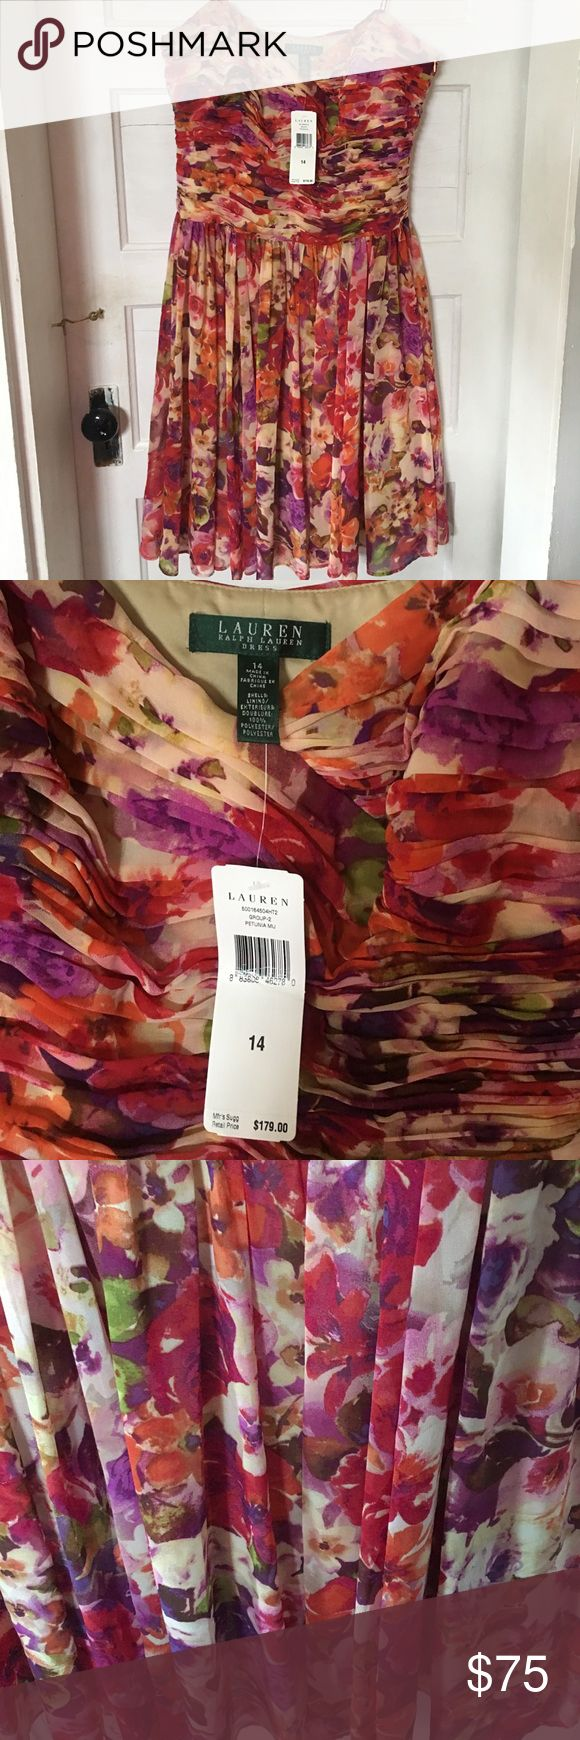 Ralph Lauren women's dress size 14 NWT Absolutely beautiful women's dress by Ralph Lauren in size 14.  Tags say $179 mfg suggested retail price! Beautiful floral print of multiple colors. Has thin straps and zipper under arm area for ease in dressing. Brand new never worn and is fully lined. Ralph Lauren Dresses